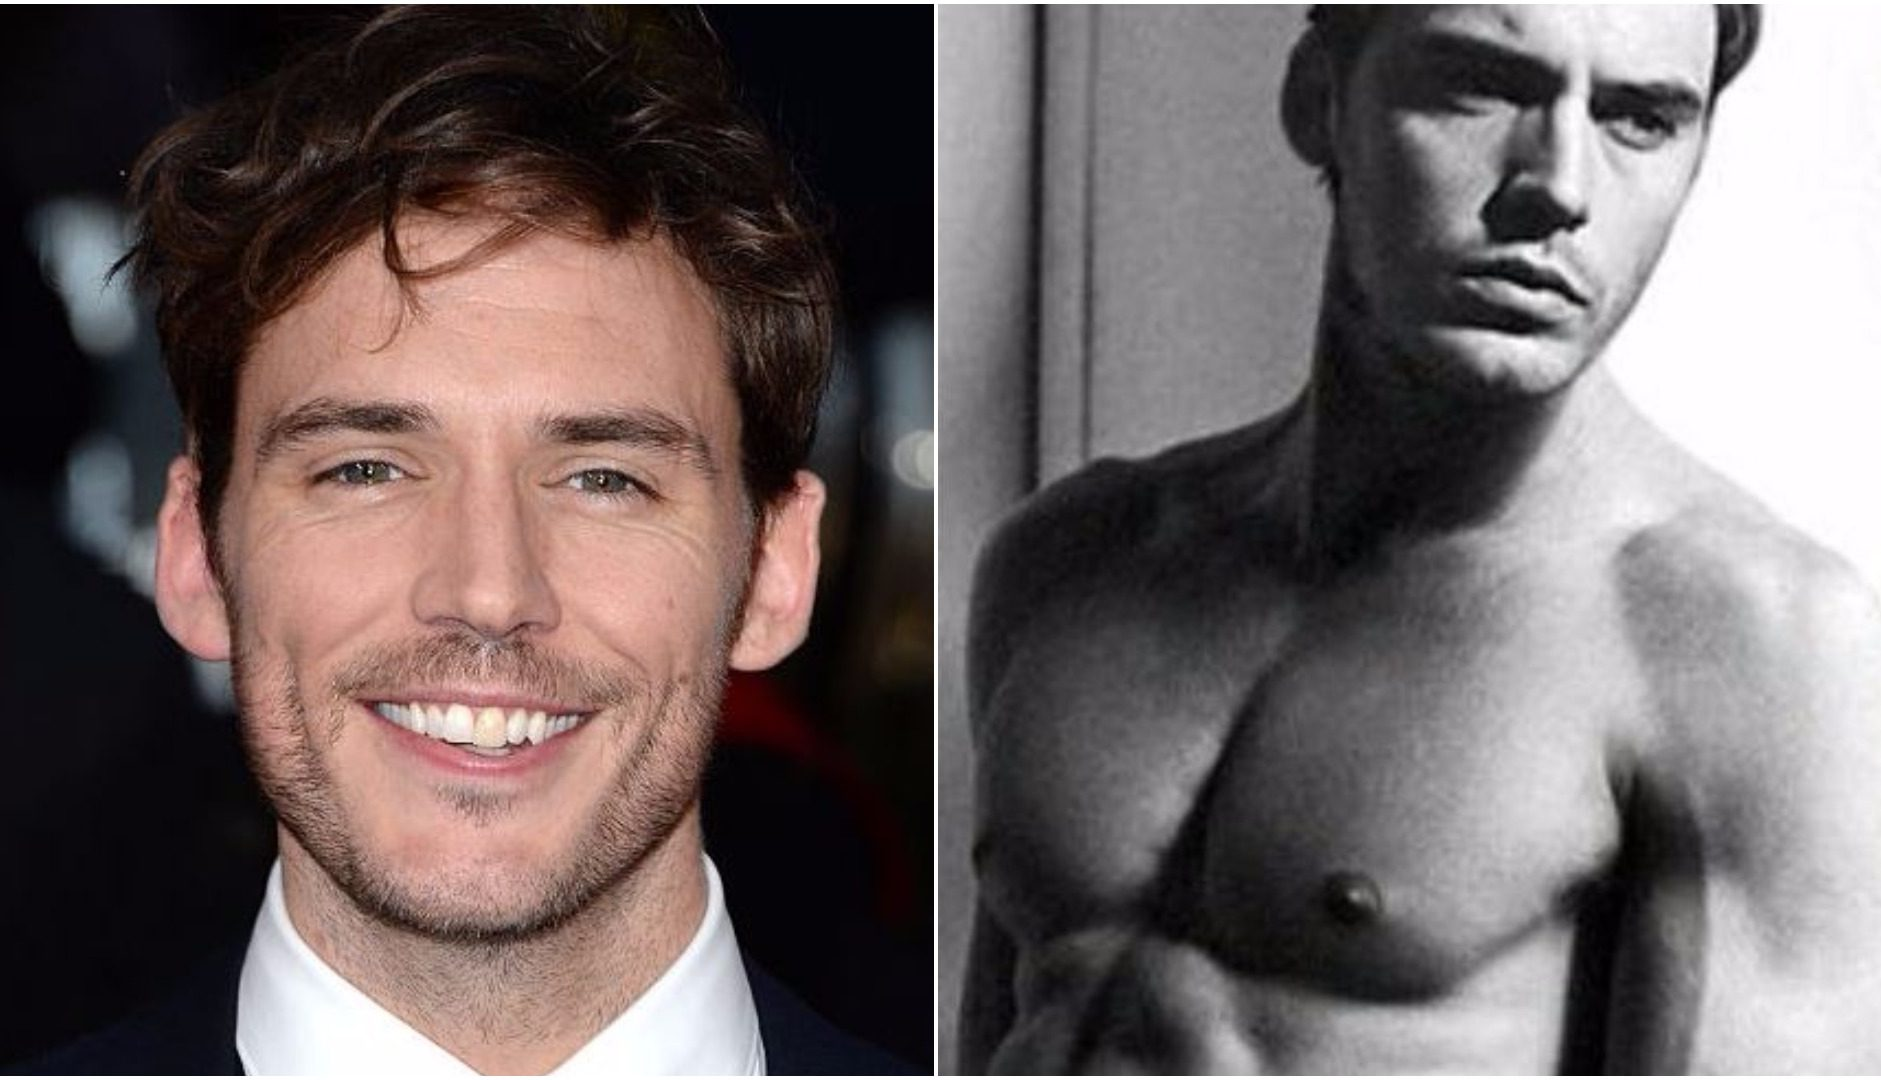 Check out Sam Claflin 'lookalike' who's been making the actor feel inadequate 'for years'